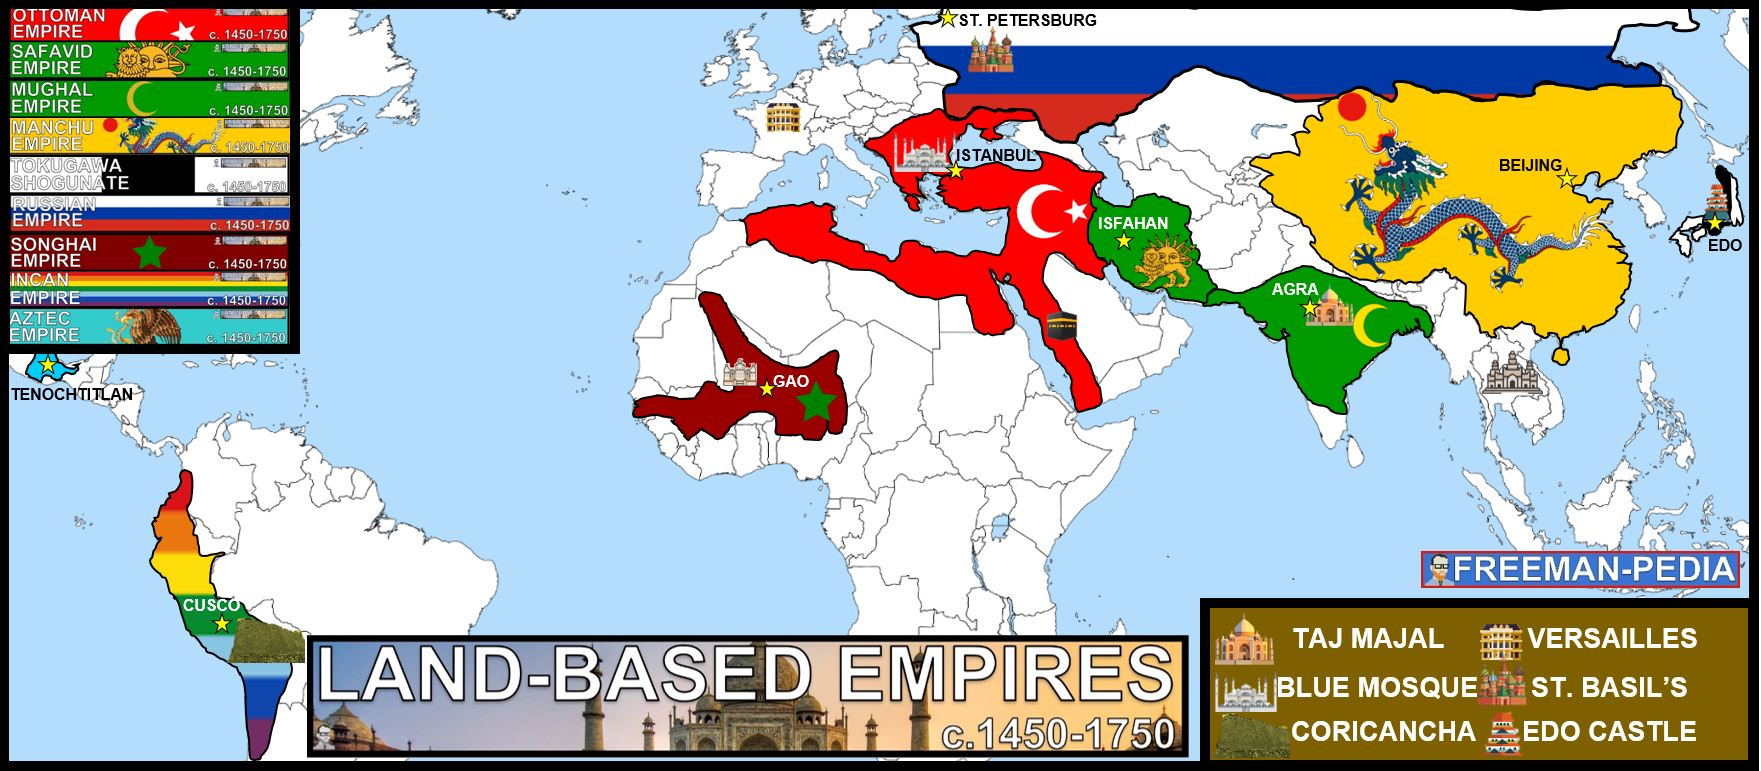 LAND EMPIRES MAP AP WORLD HISTORY FREEMANPEDIA MODERN.JPG